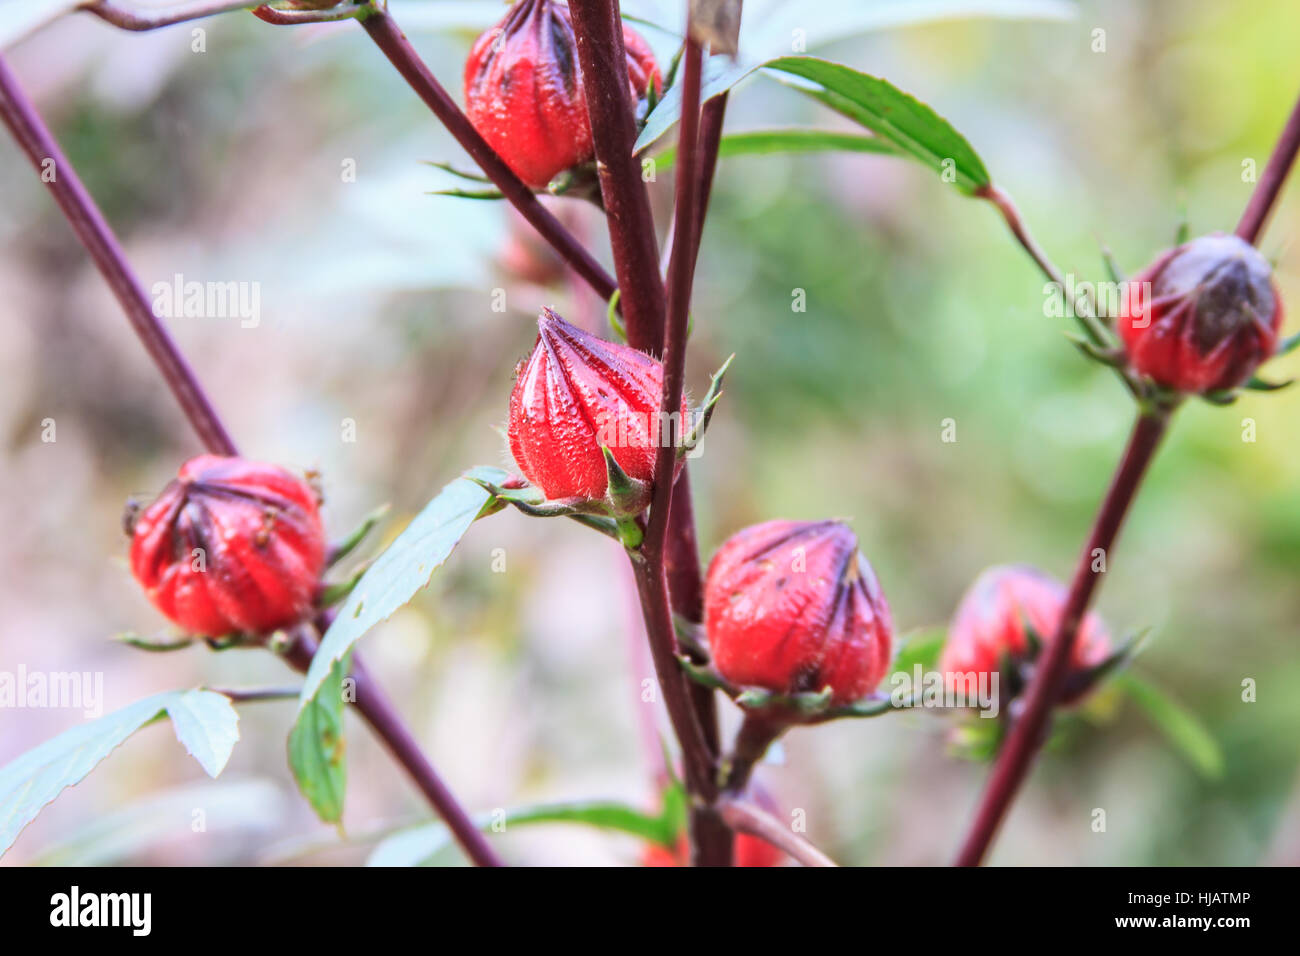 Roselle or Hibiscus sabdariffa fruit on plant in garden Stock Photo